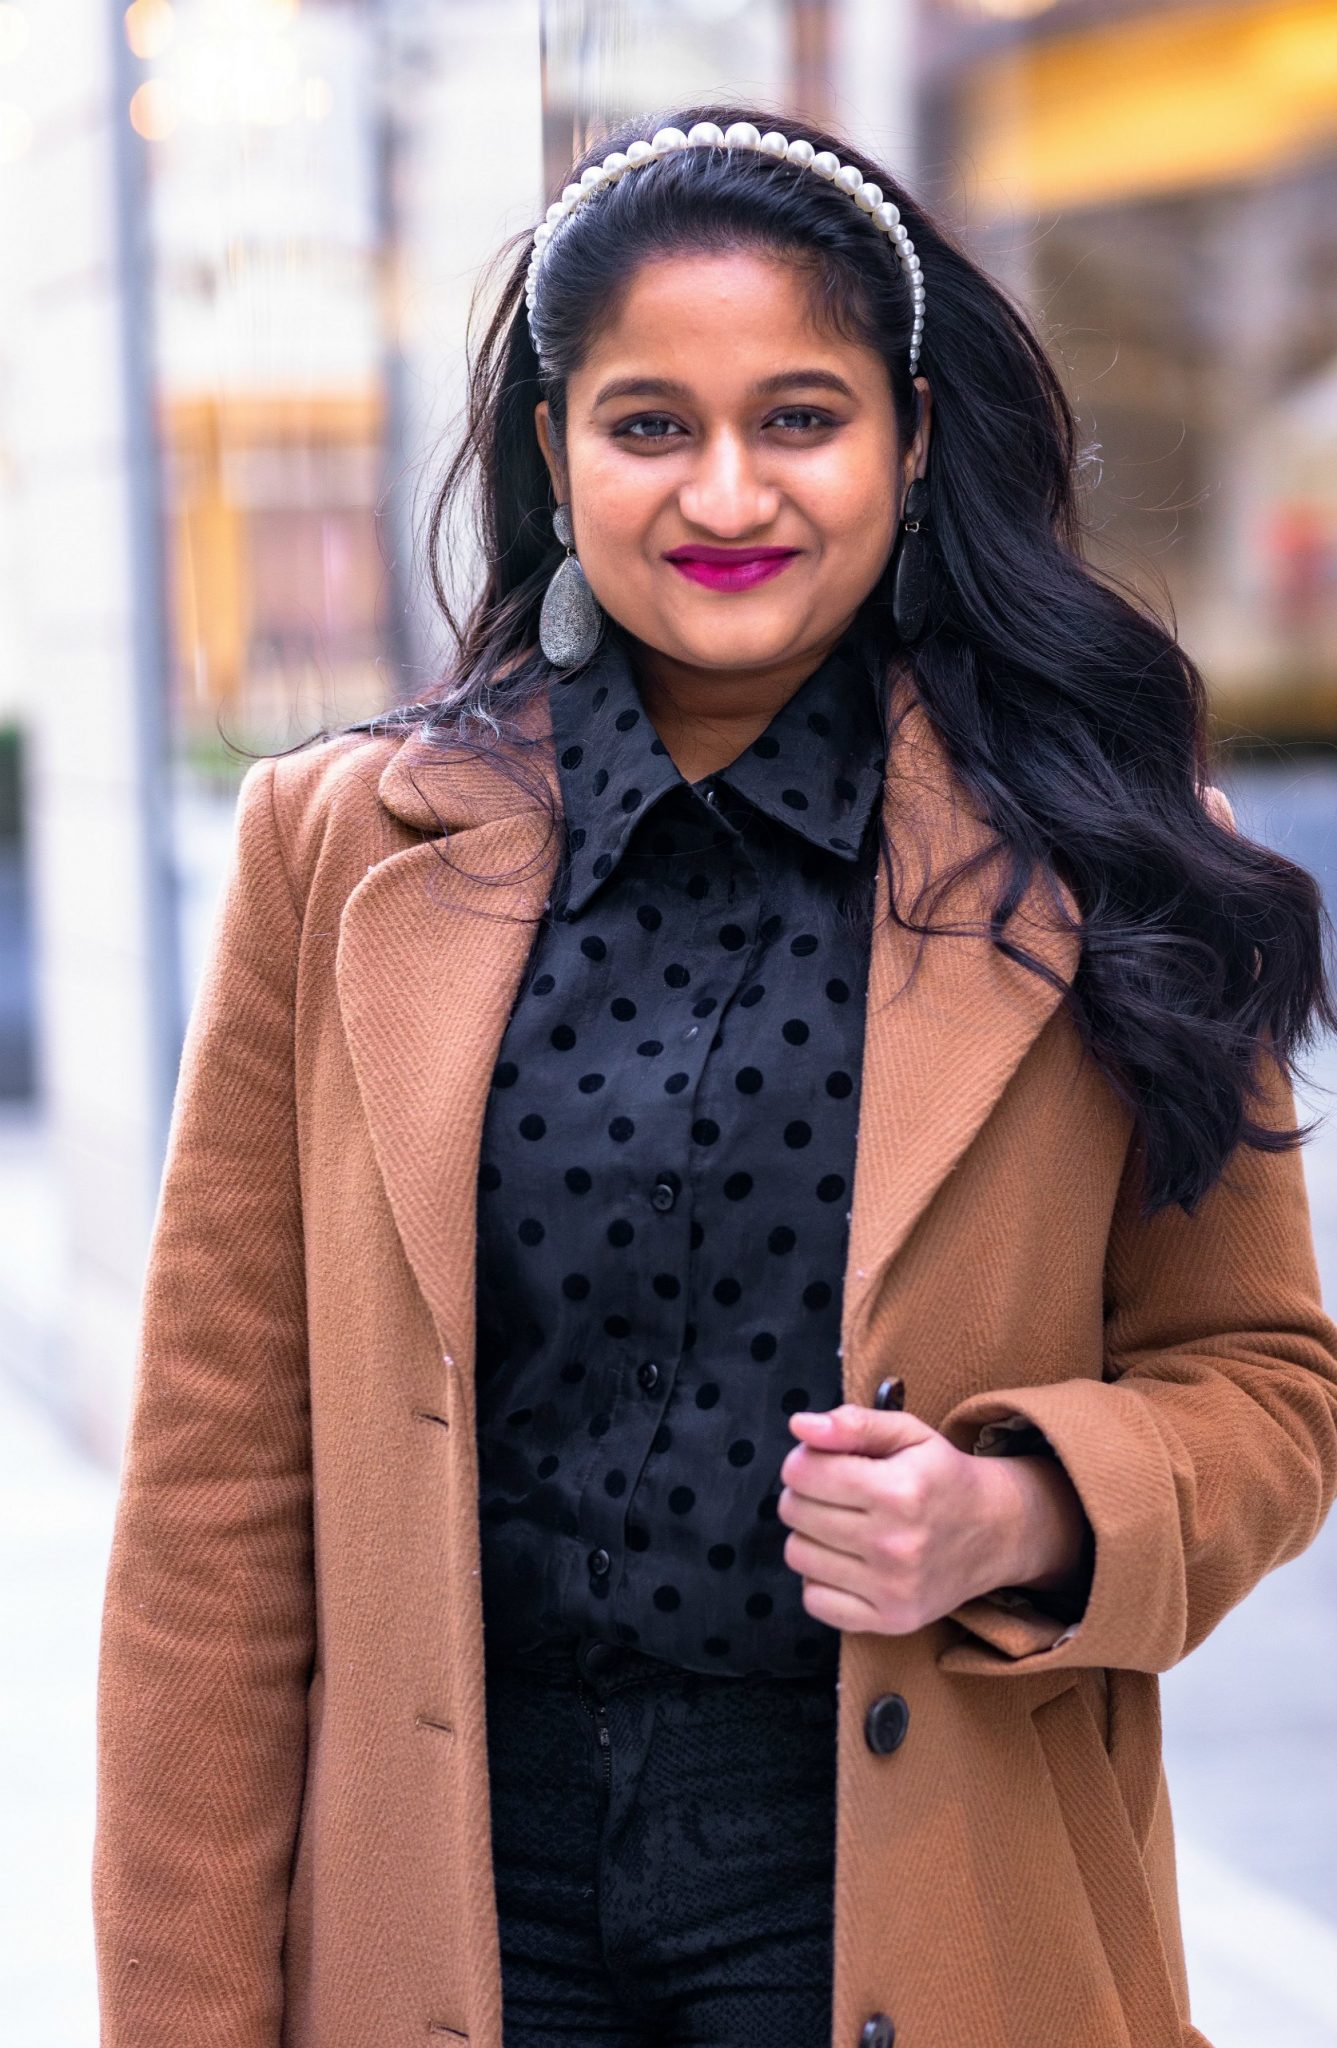 How to Be a Productive Blogger and Influencer featured by top US fashion blogger and influencer Surekha of Dreaming Loud